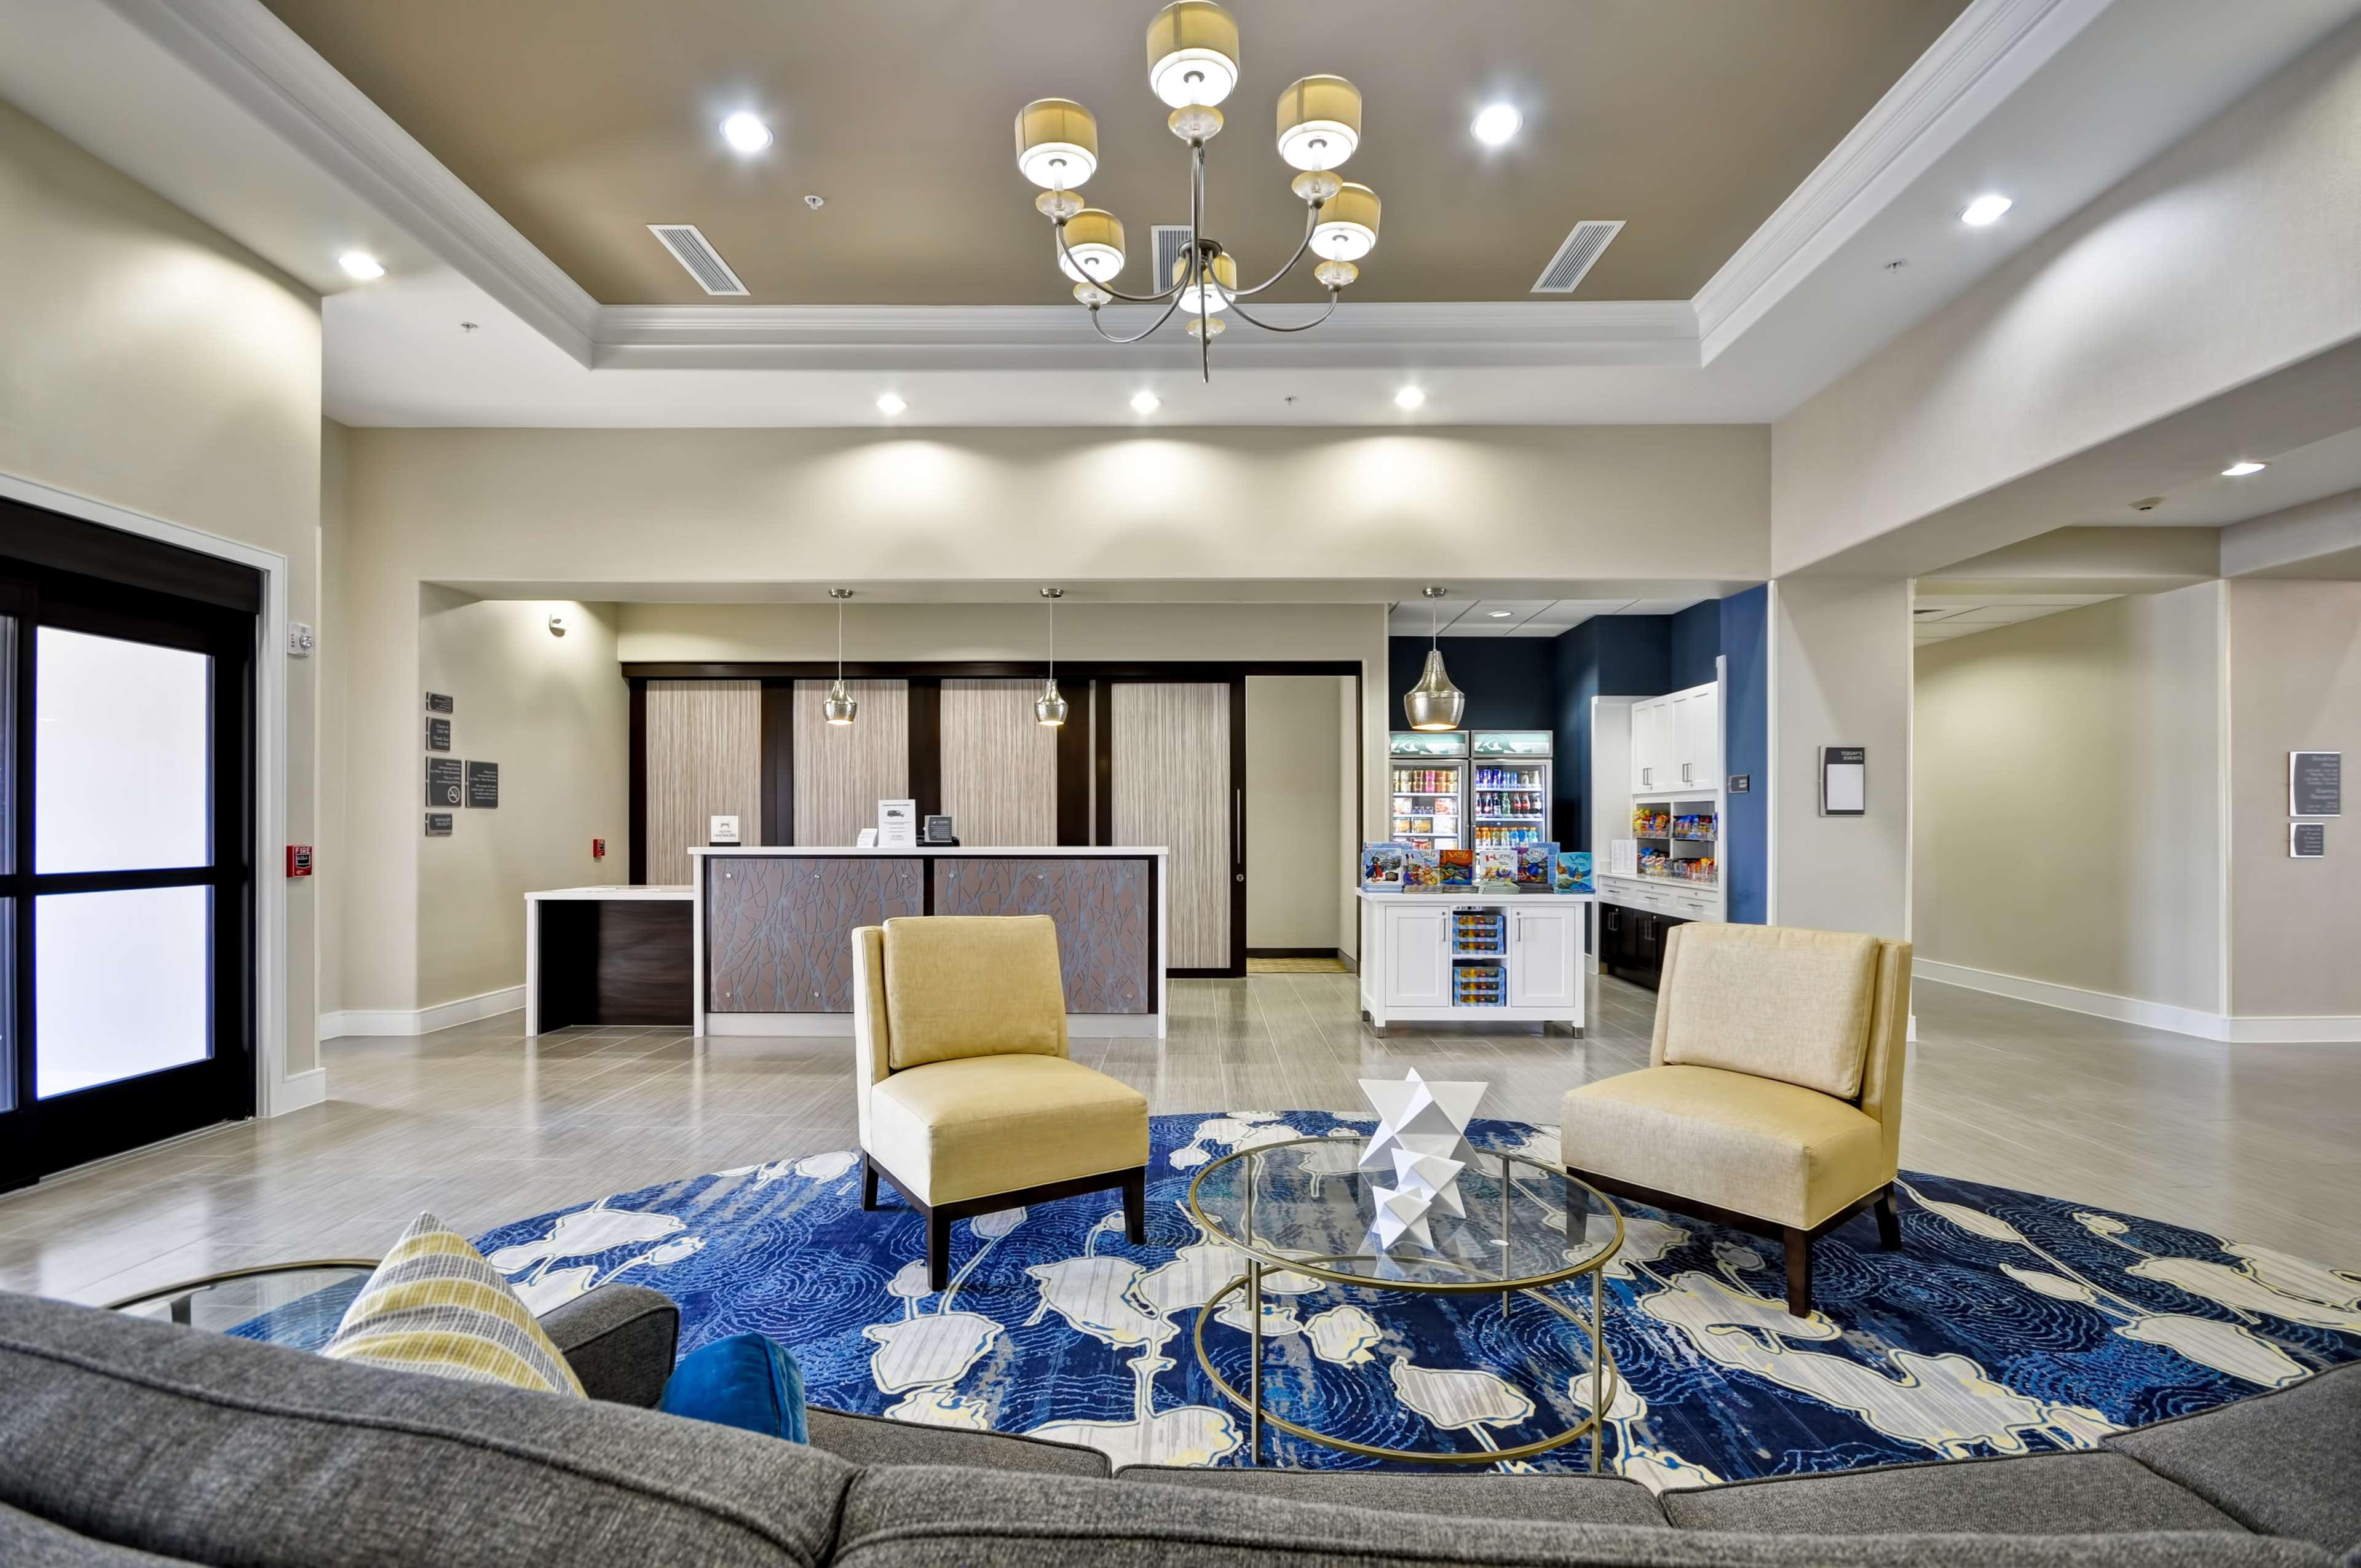 Homewood Suites by Hilton New Braunfels image 13